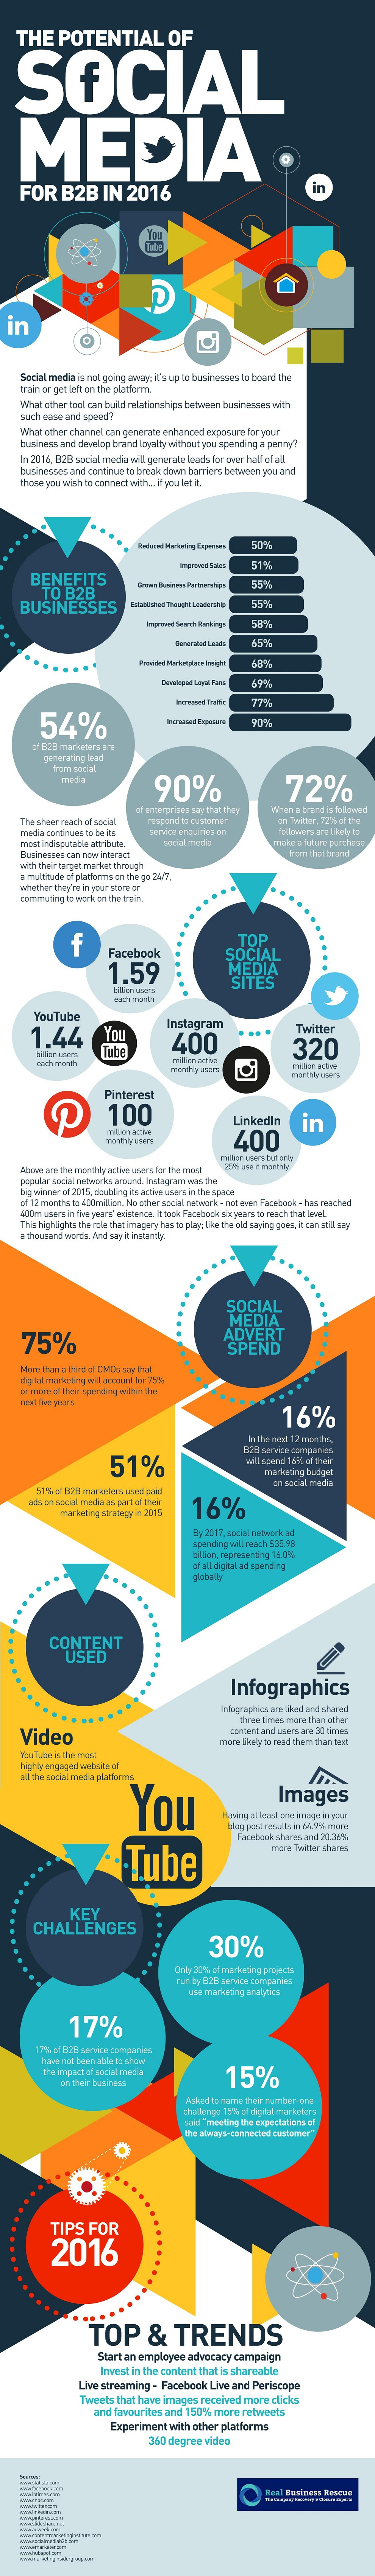 The Potential of Social Media for B2B in 2016 - [INFOGRAPHIC]